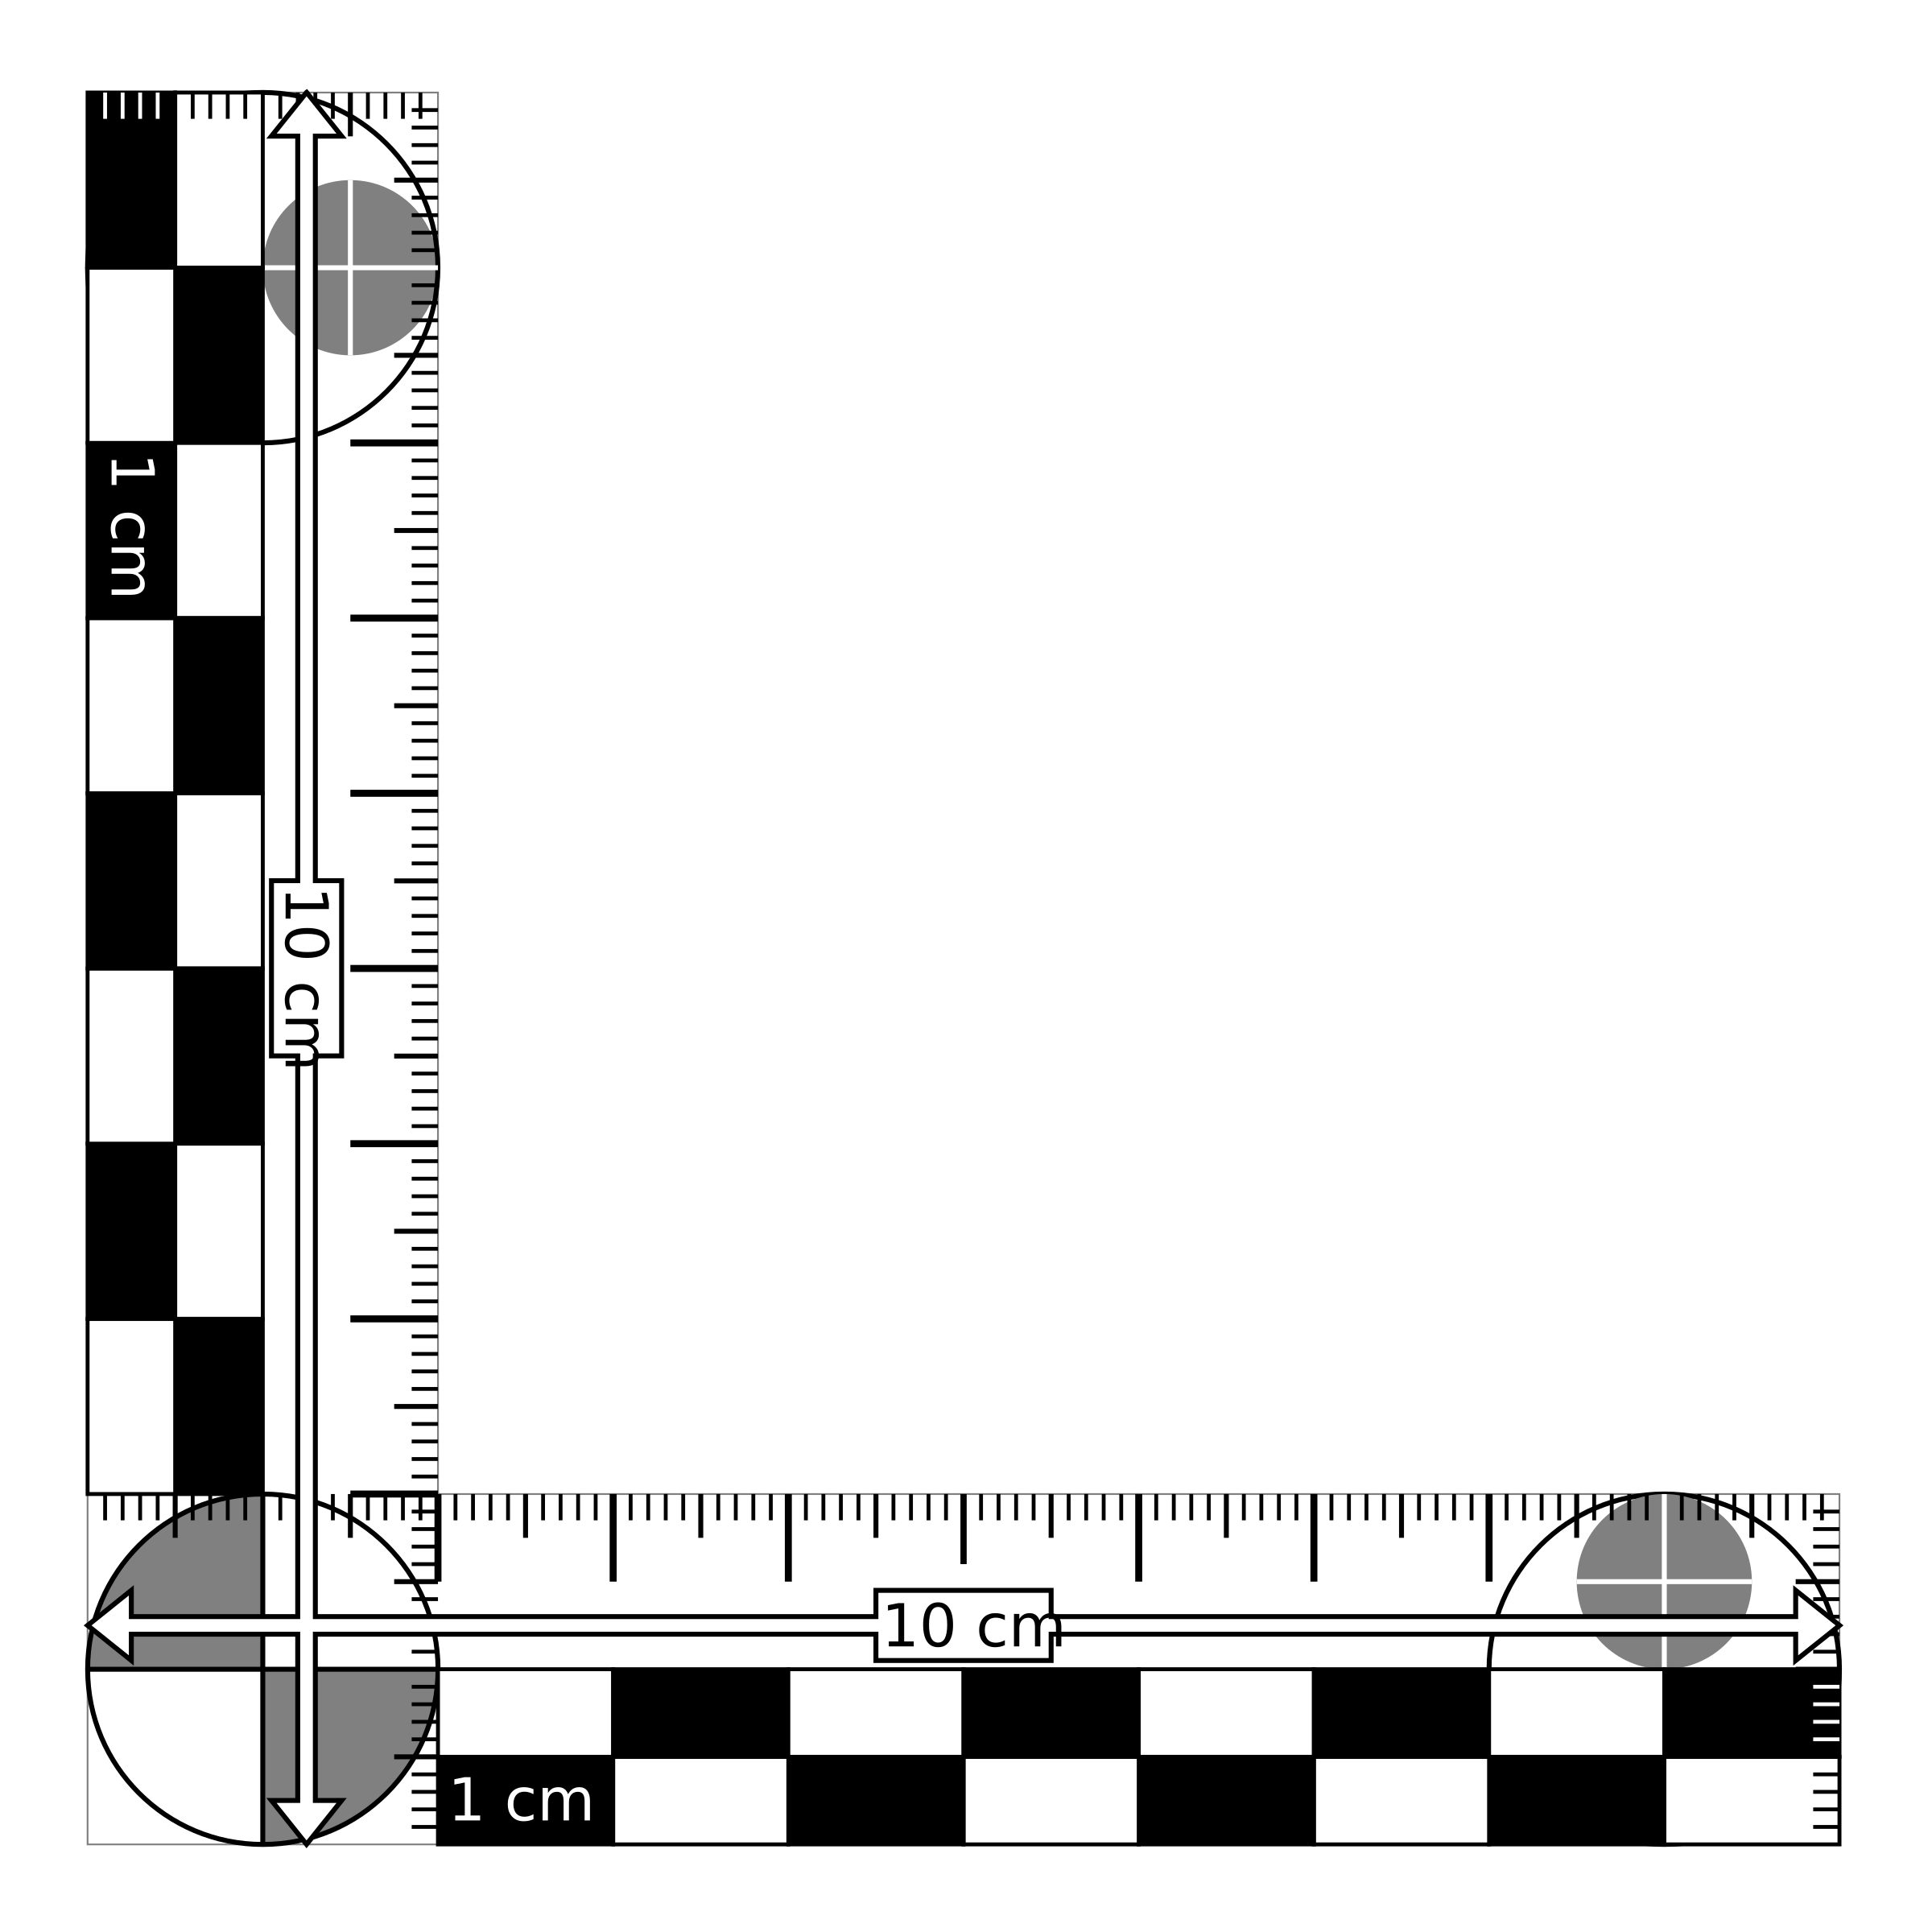 Graphic scale png. Clipart photomacrographic x cm